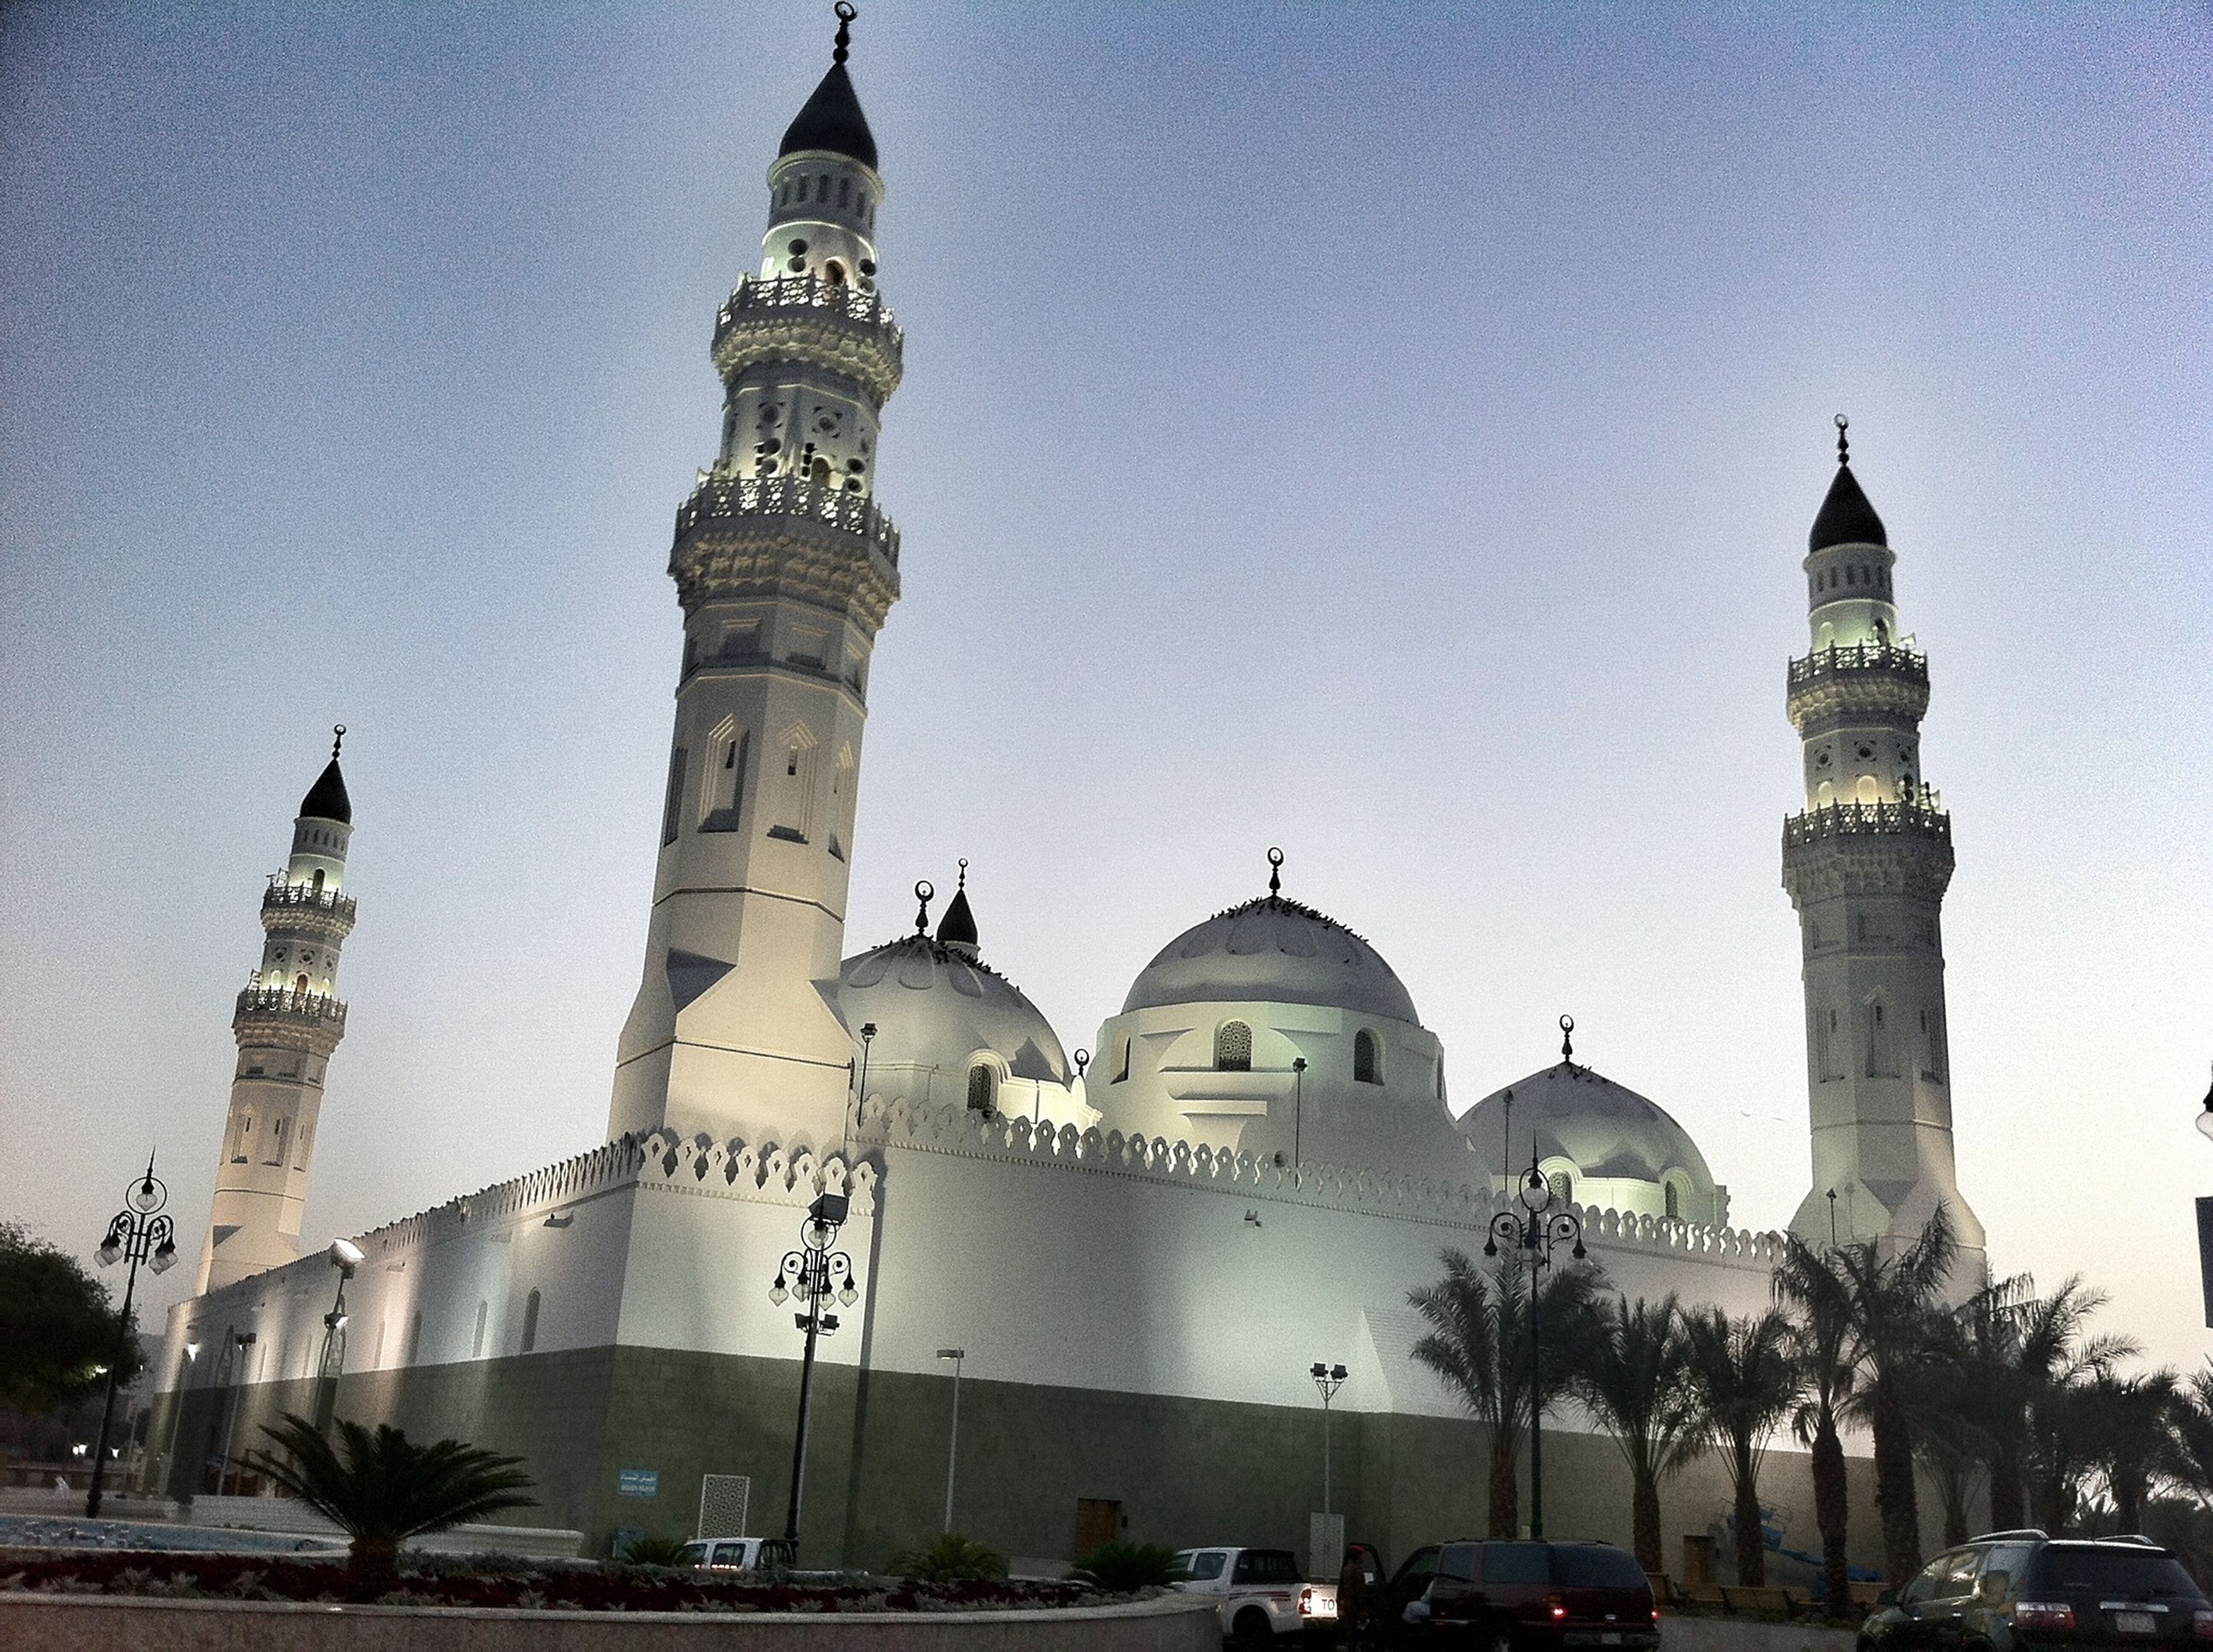 architecture, building exterior, built structure, dome, religion, place of worship, mosque, islam, famous place, spirituality, church, travel destinations, clear sky, tourism, travel, international landmark, tower, blue